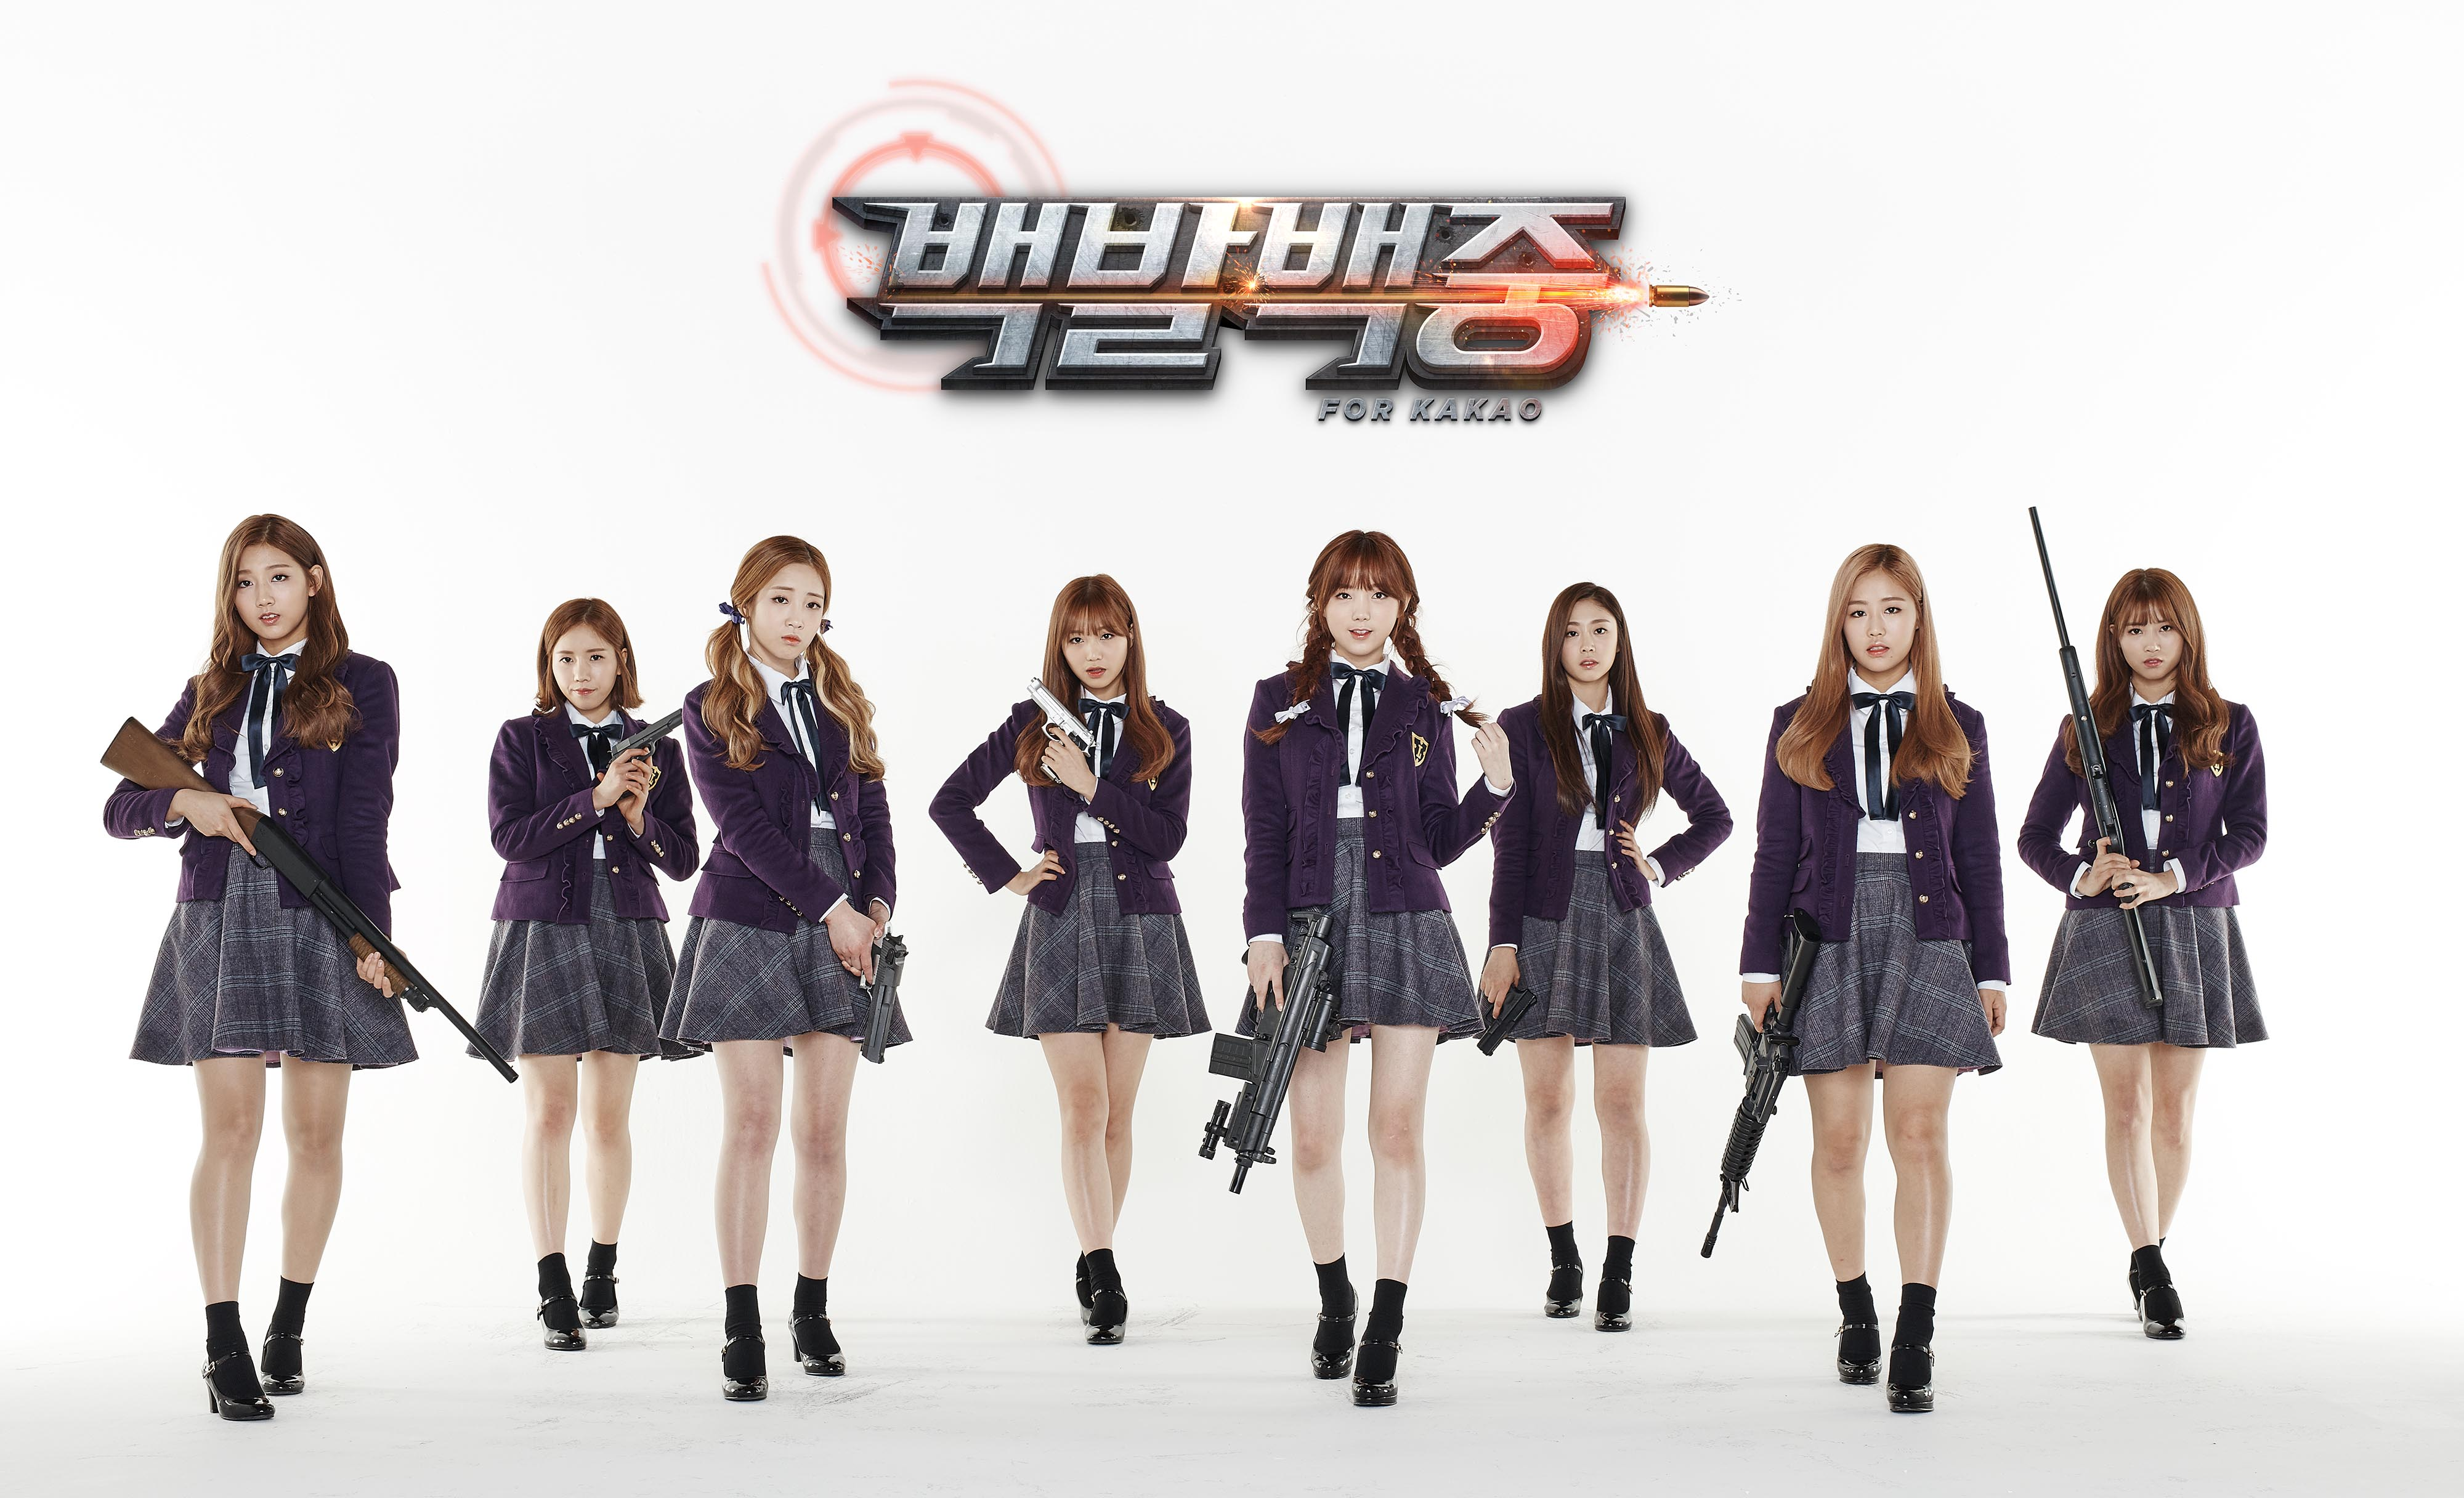 Lovelyz chosen as models for a first-person shooter game